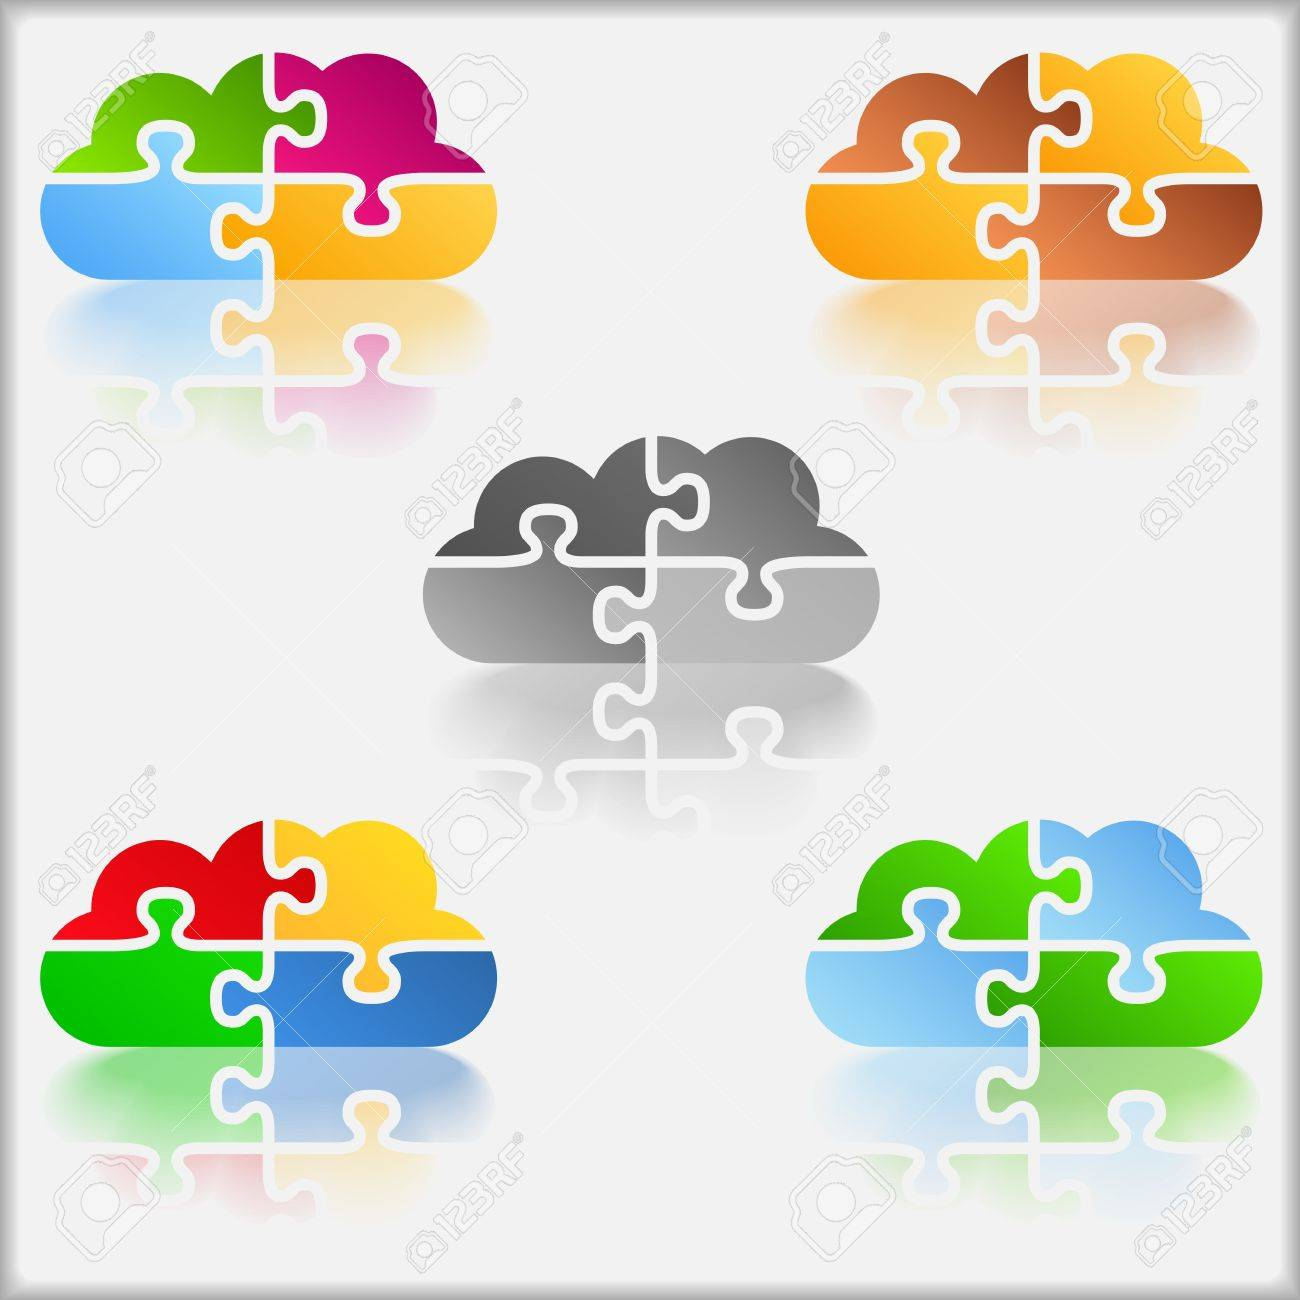 Abstract cloud made of puzzle pieces Stock Vector - 17872752